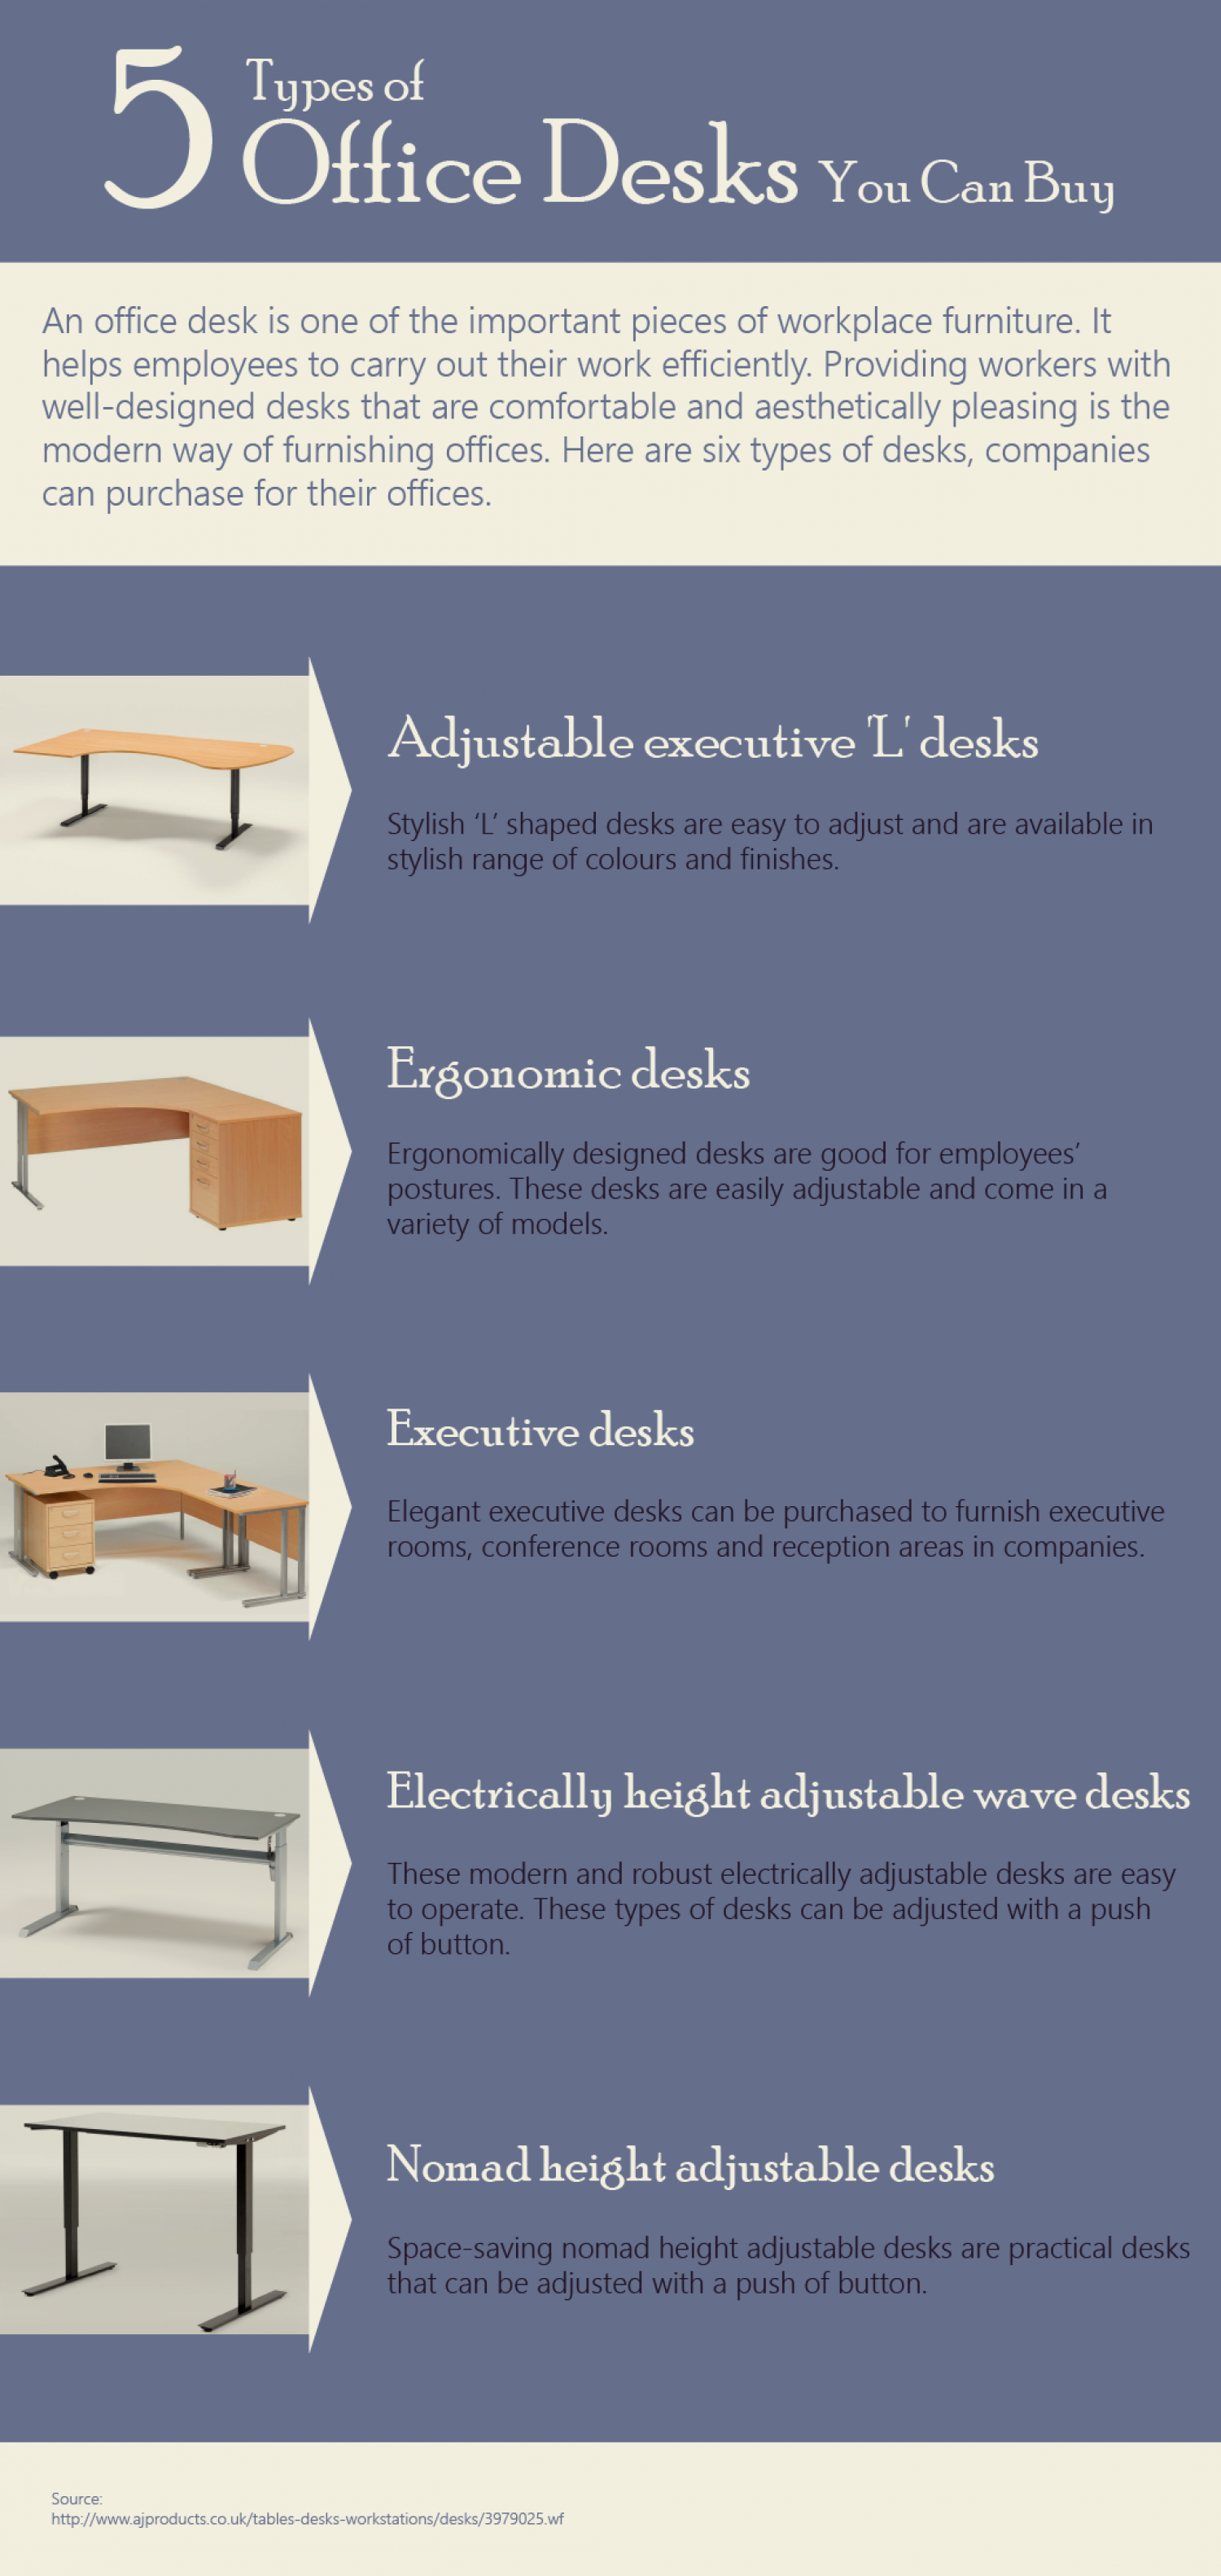 5 Types Of Office Desks You Can Buy. Infographic